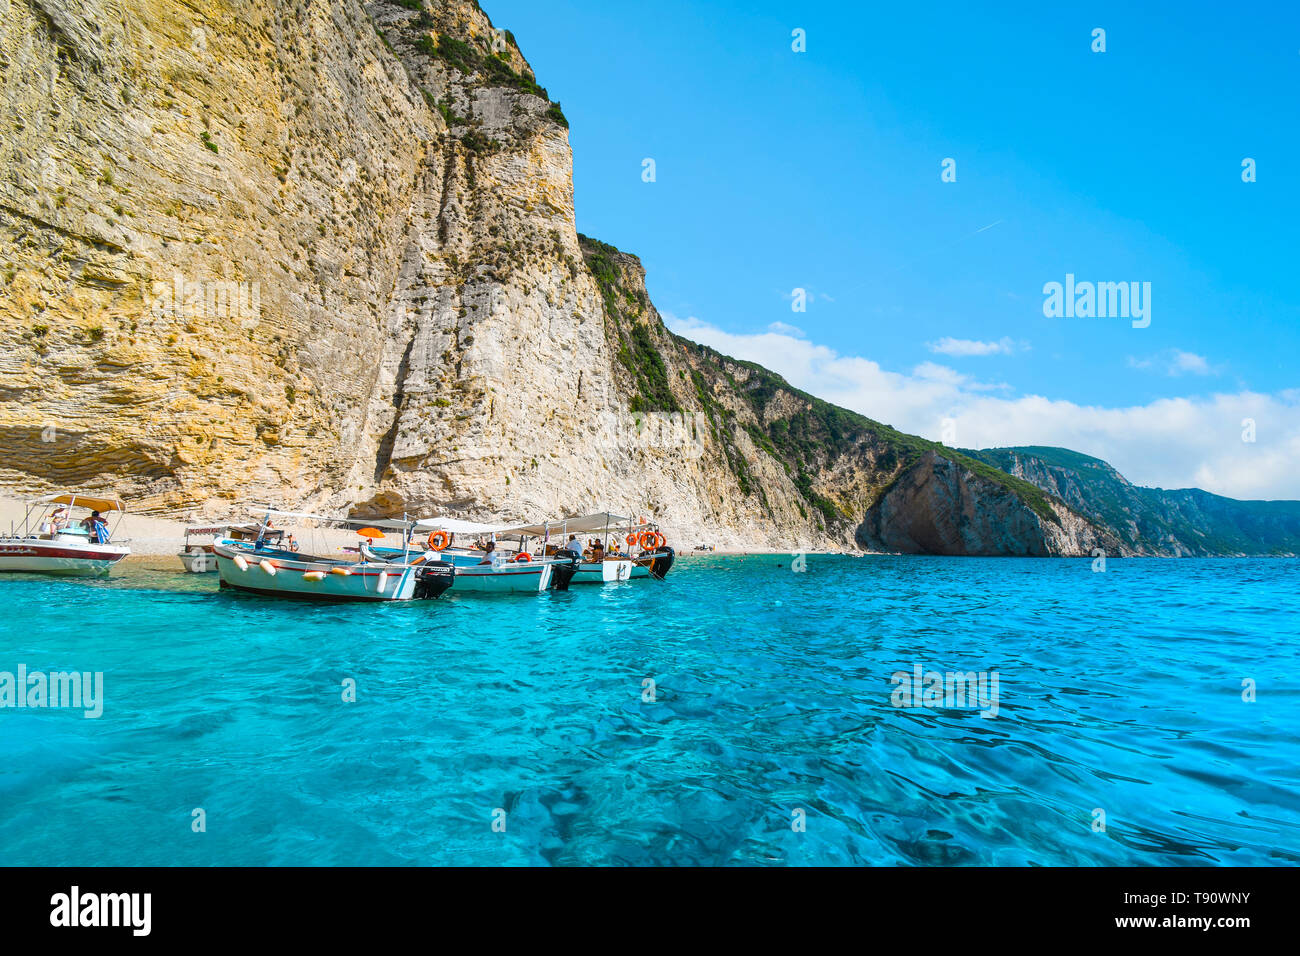 Boats line up at the shoreline in the clear waters off the sandy Paradise Beach or Chomi Beach on a sunny day in Corfu Greece. Stock Photo